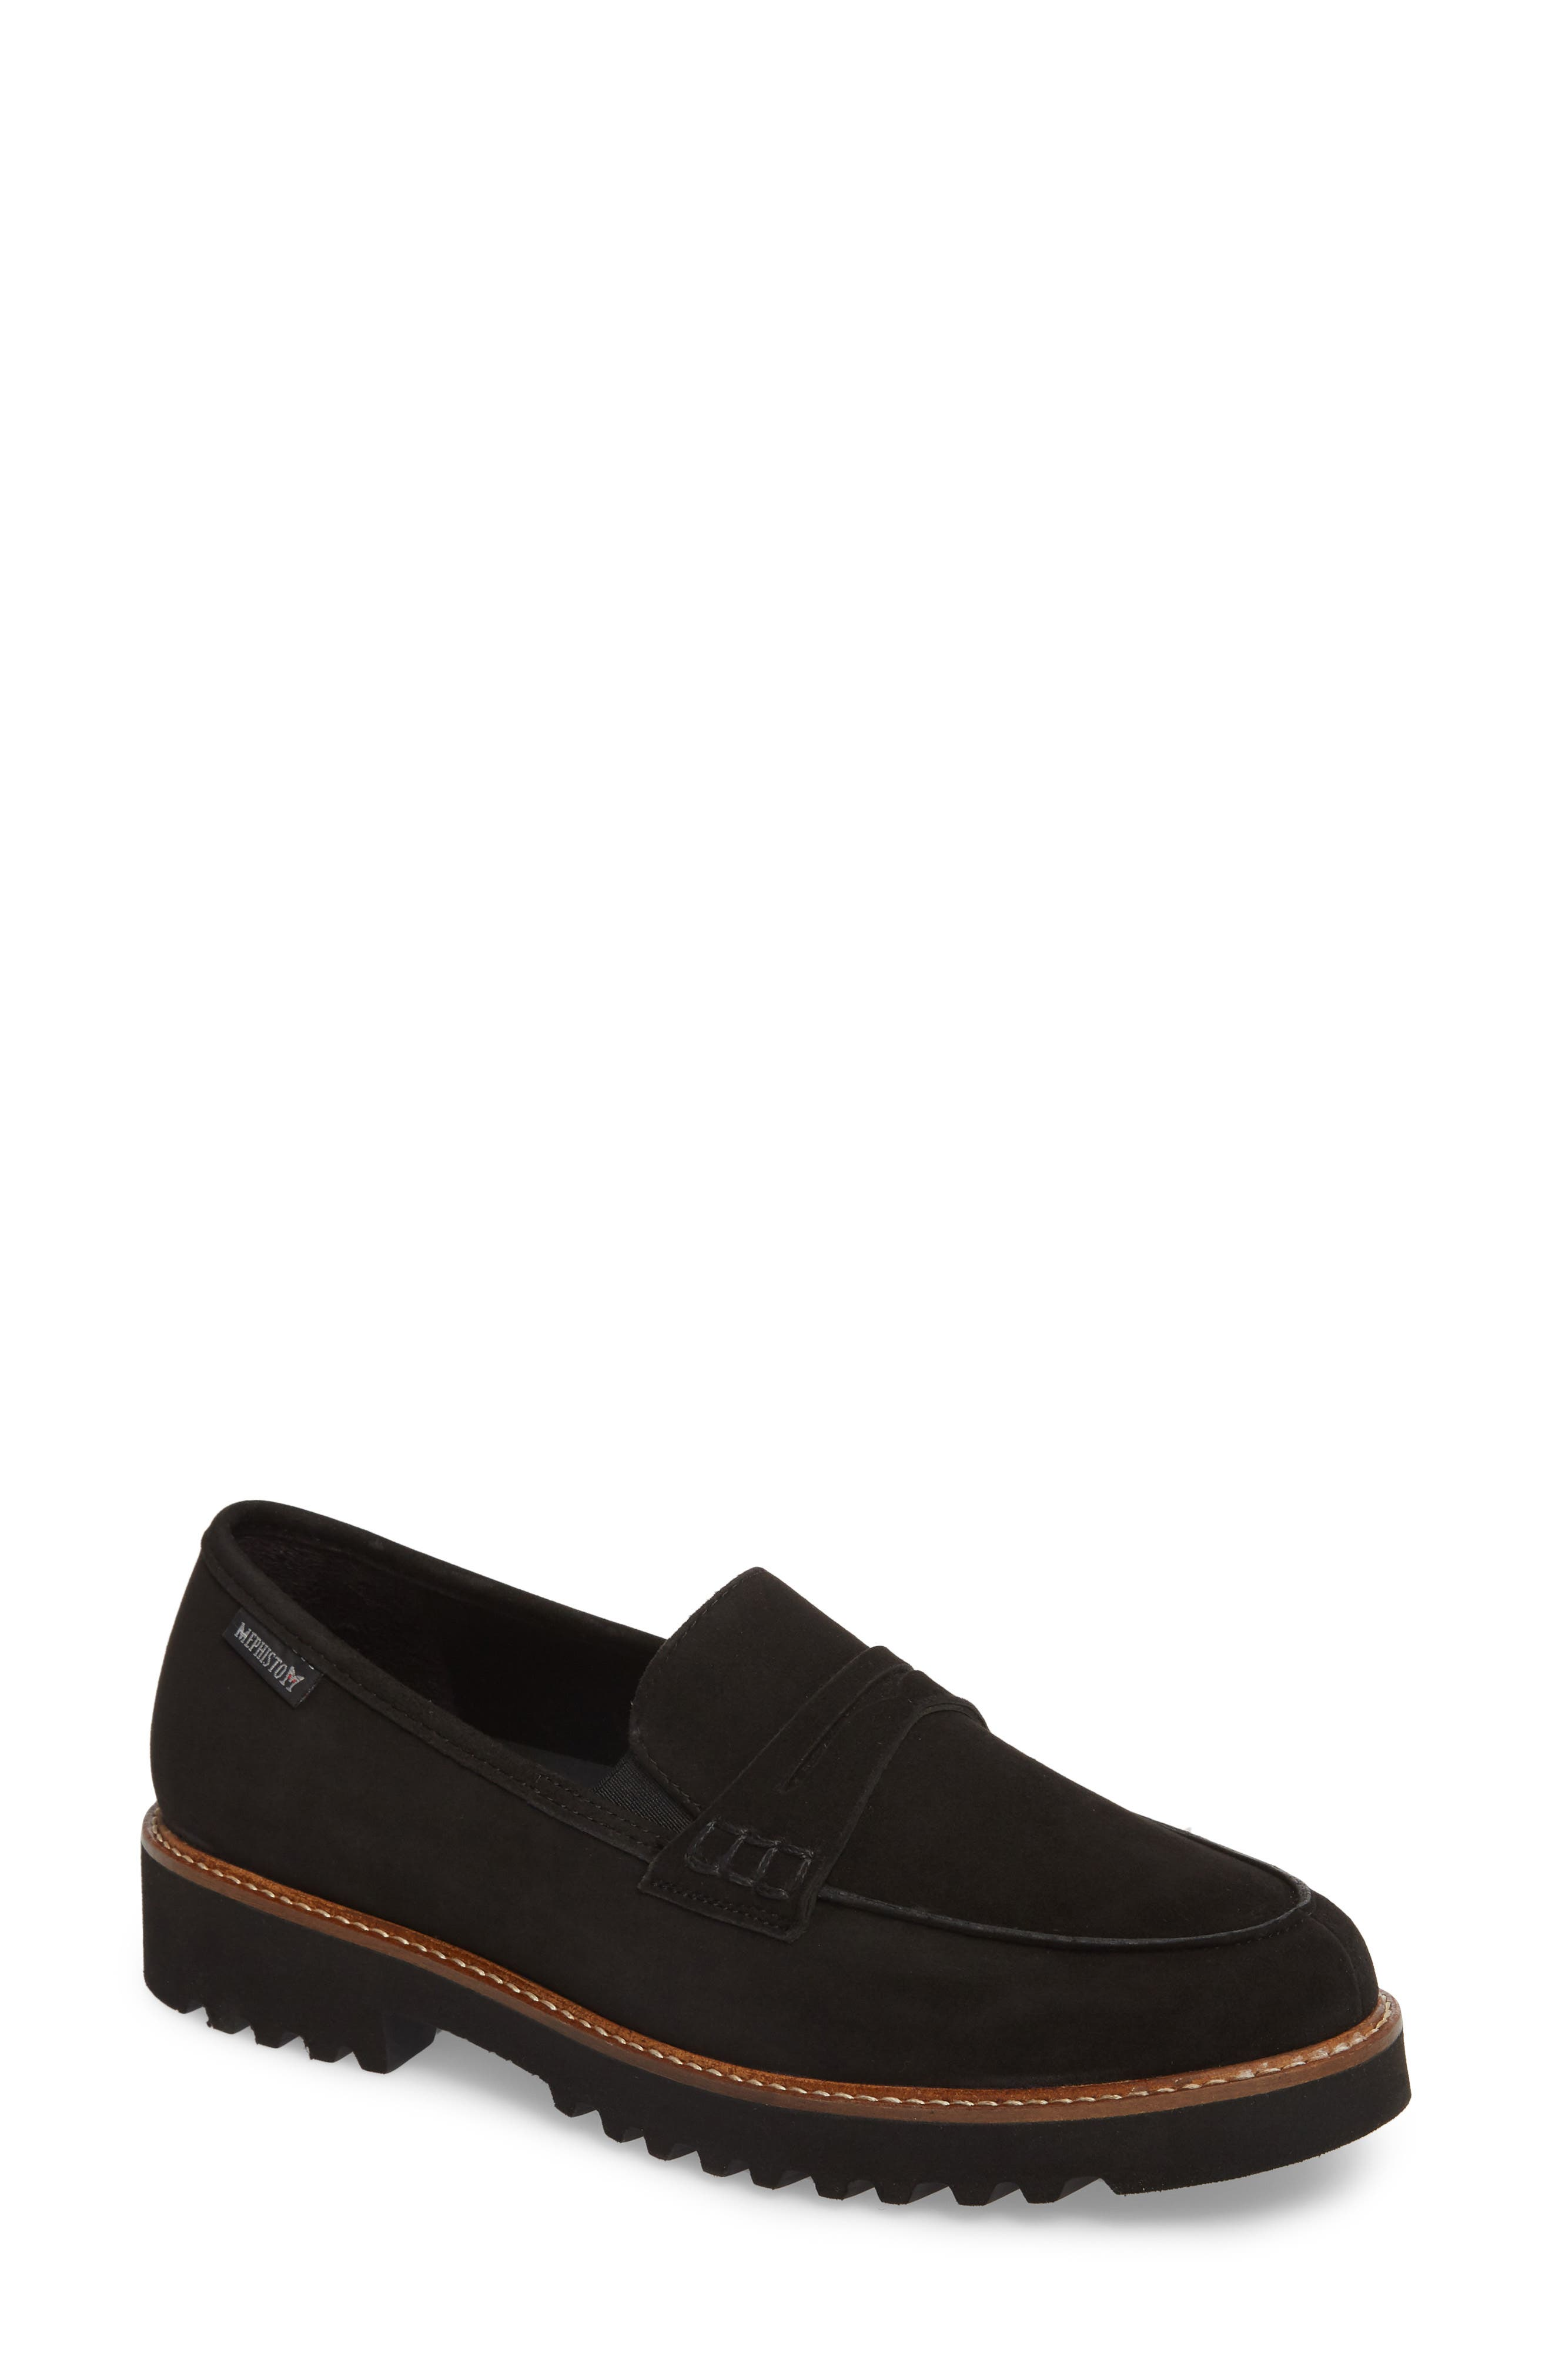 Sidney Penny Loafer,                             Main thumbnail 1, color,                             001